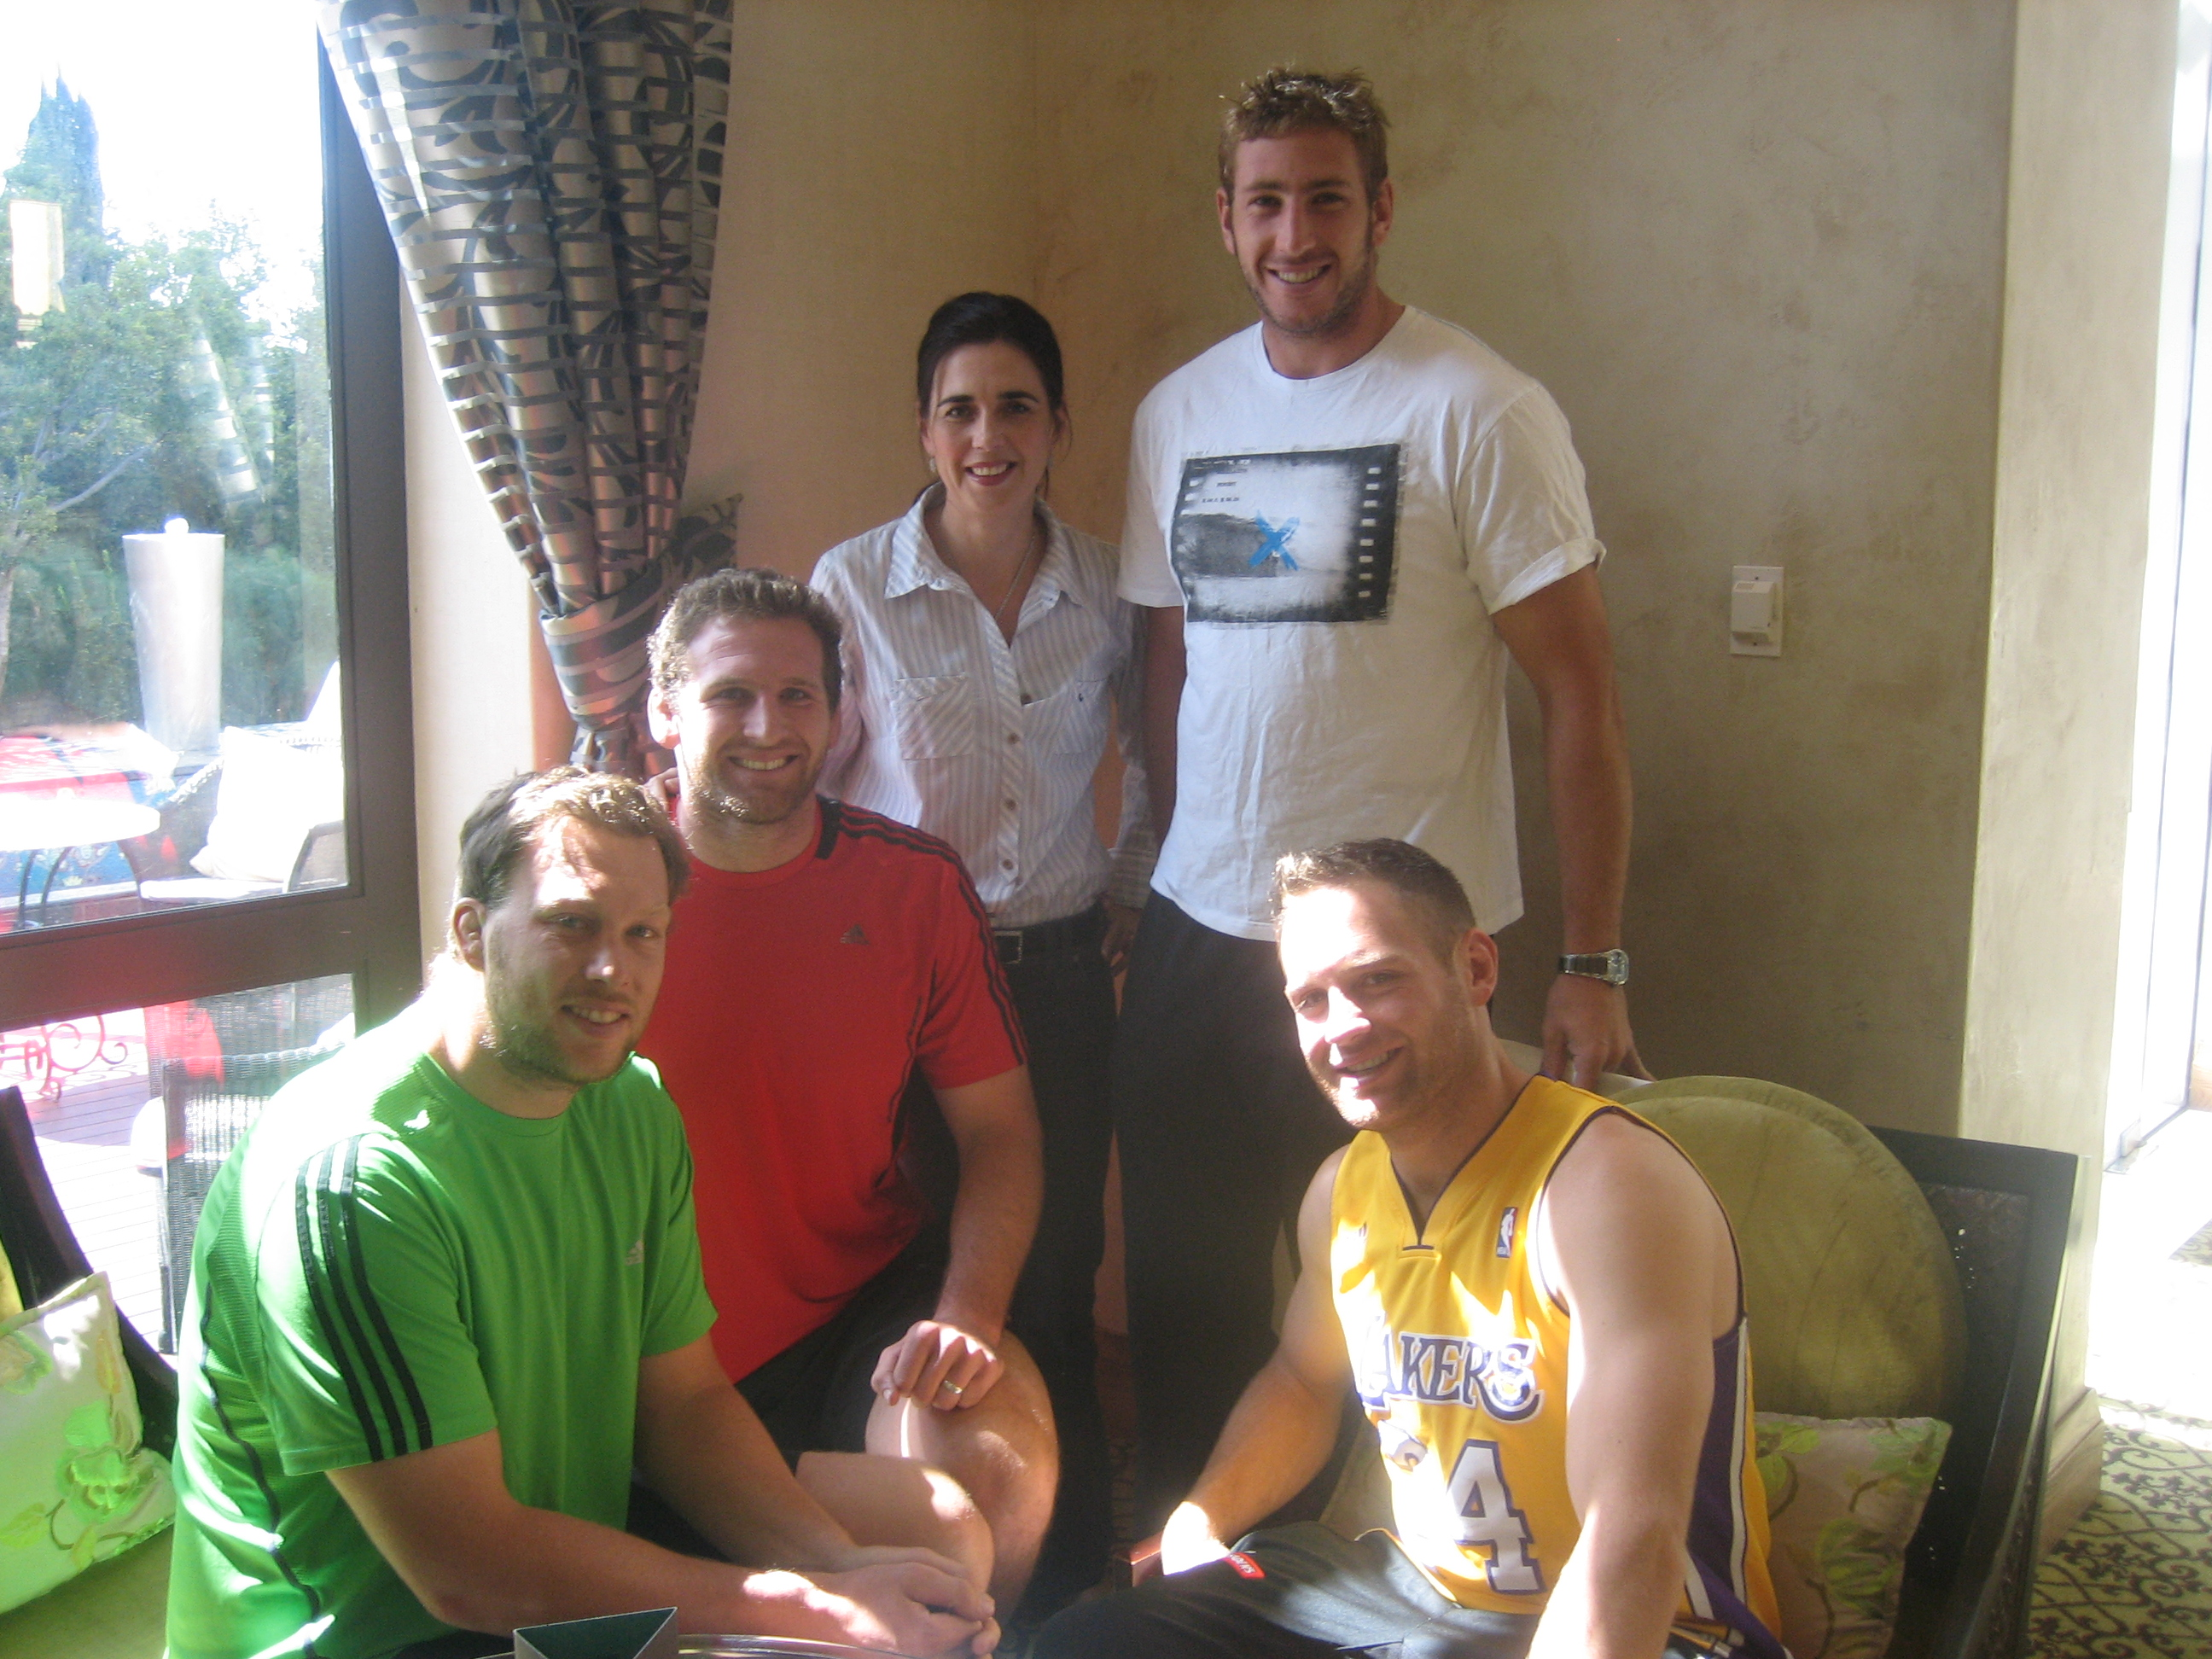 Wyatt Crockett, Kieran Read, Luke Romano and Andy Ellis with Janine , Crusaders 2012